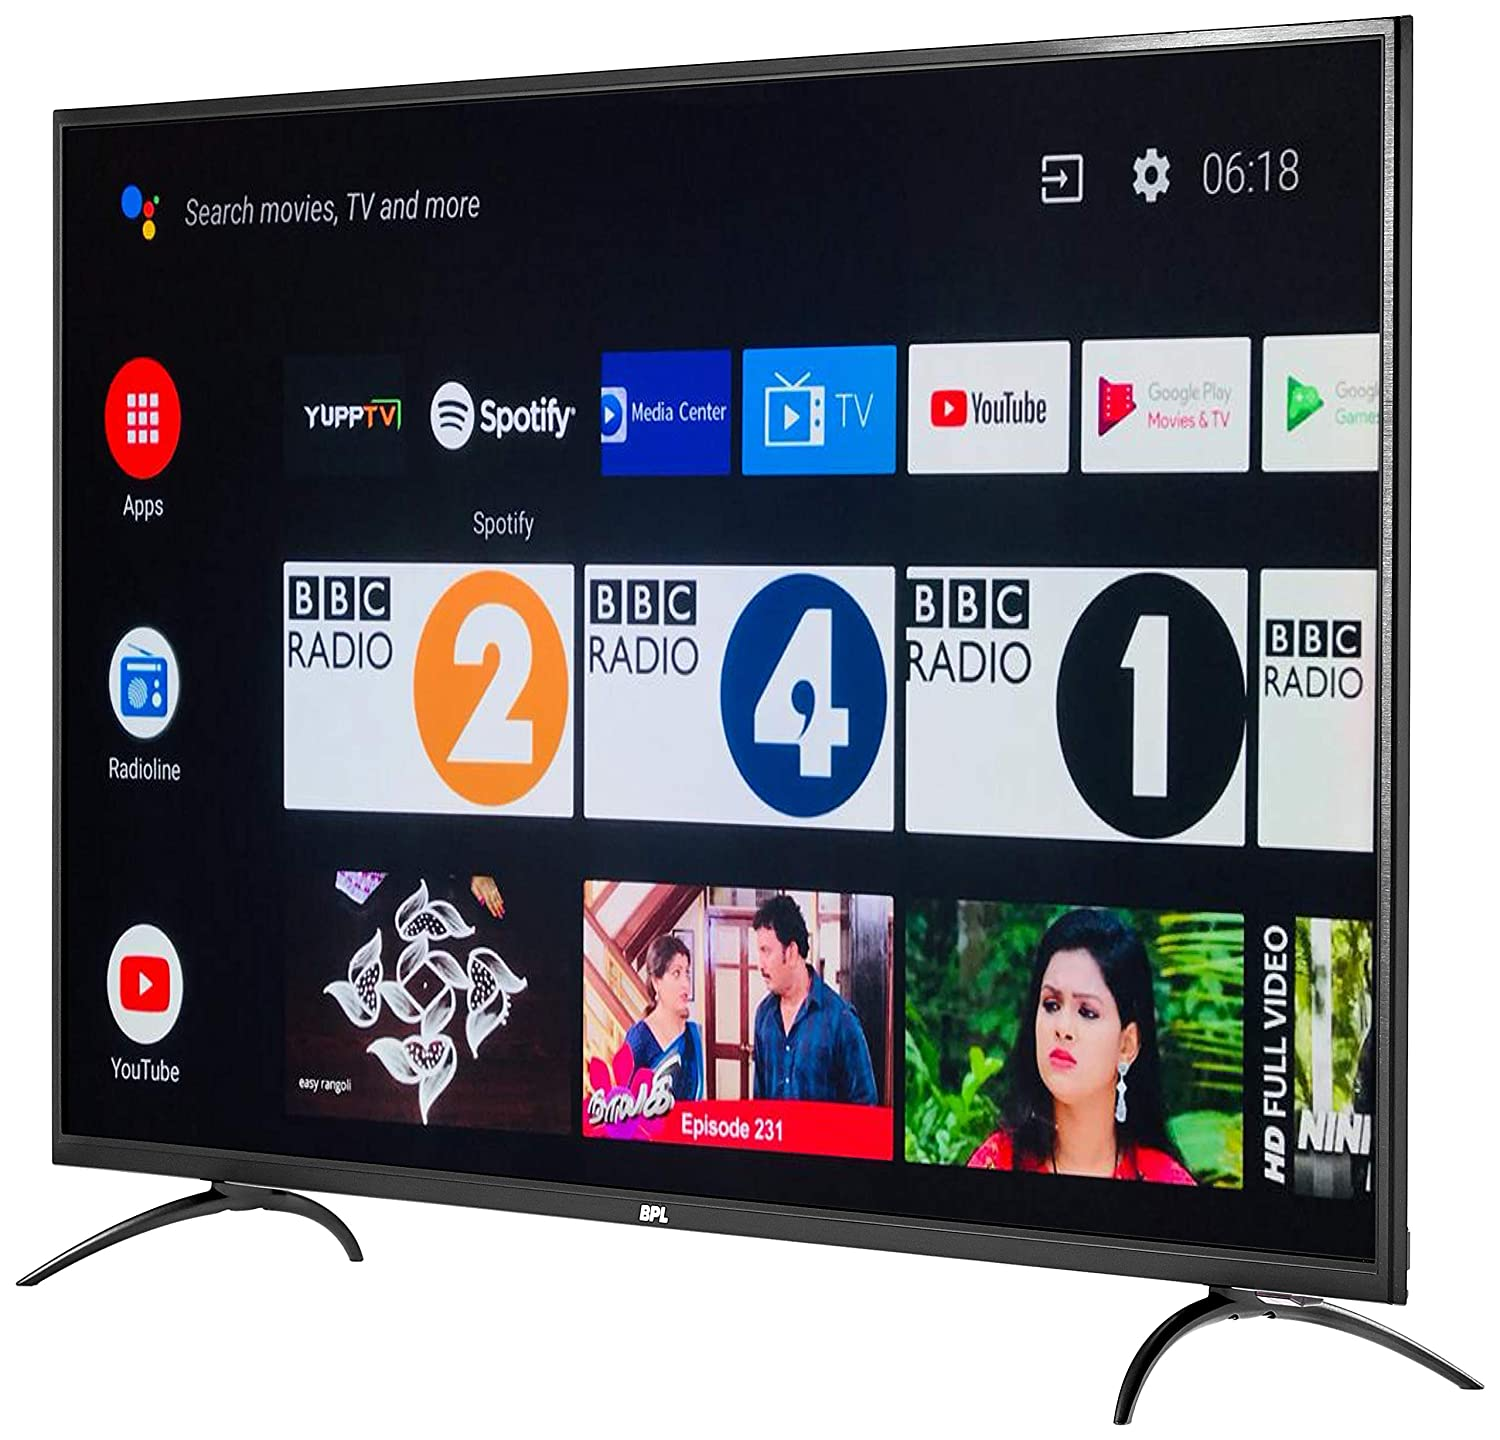 4K Ultra HD BPL (49 inches) Official Android LED Smart TV T49AU26A